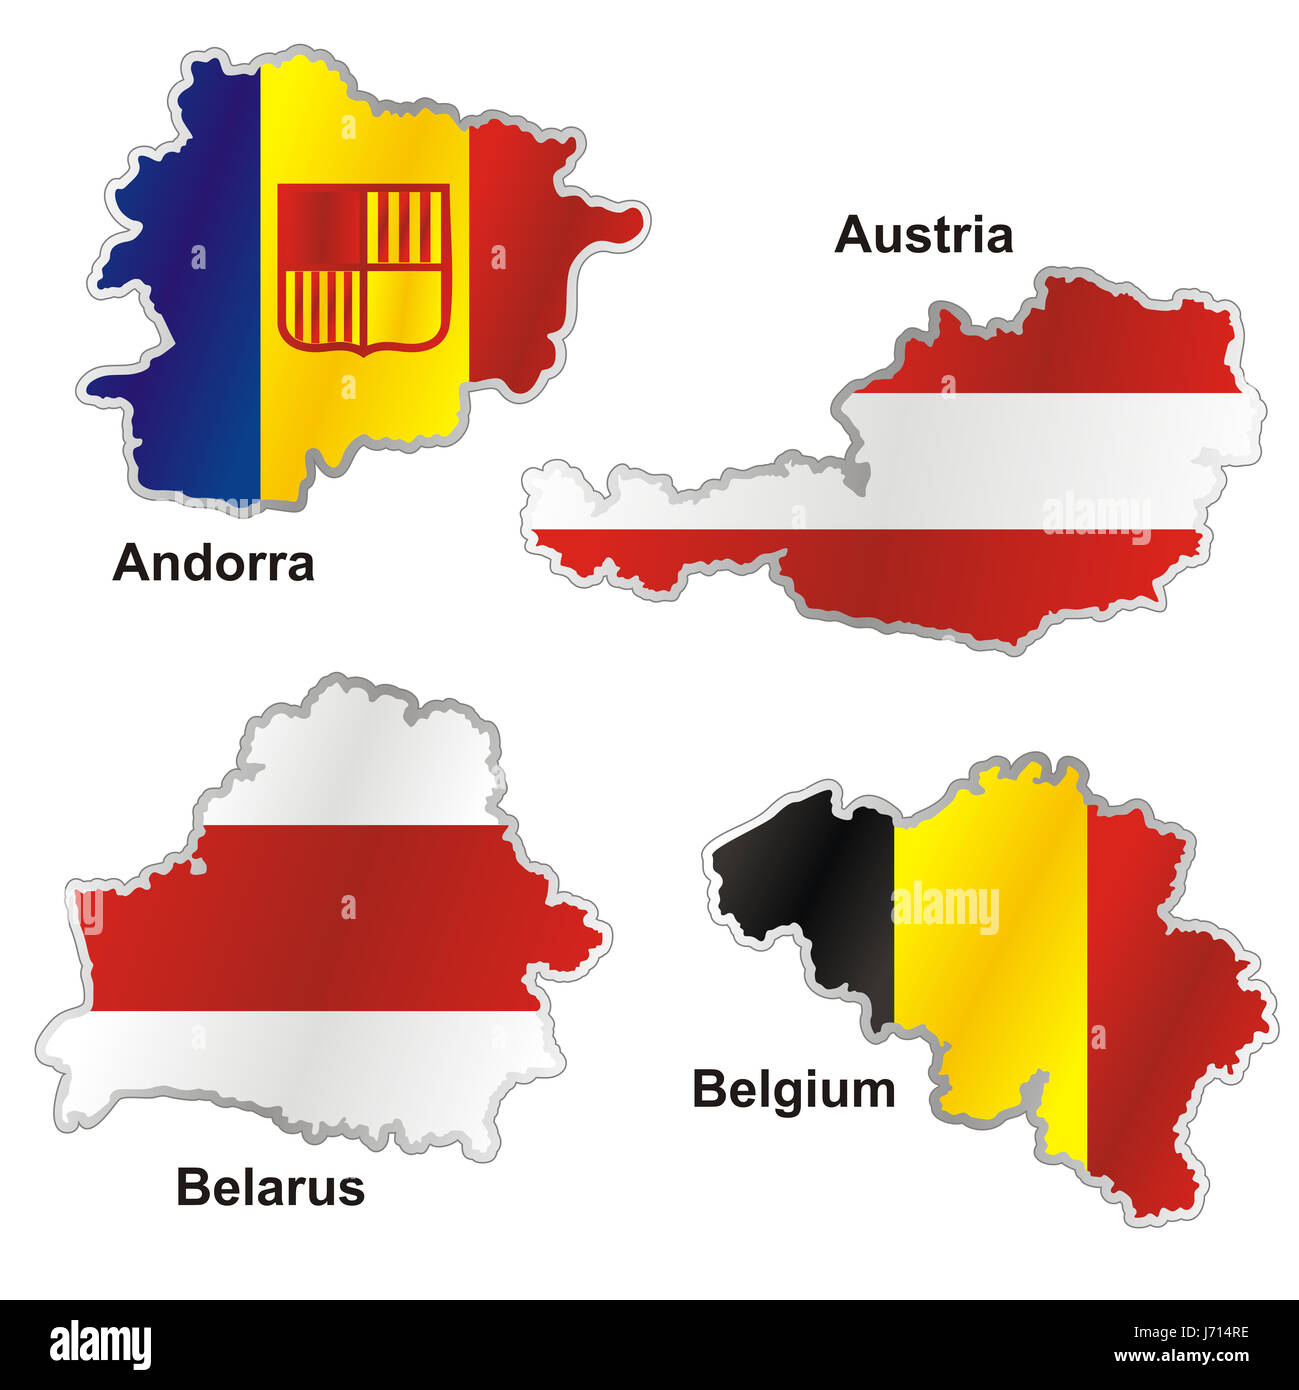 Austria Flag Belgium Andorra Map Atlas Map Of The World Belarus